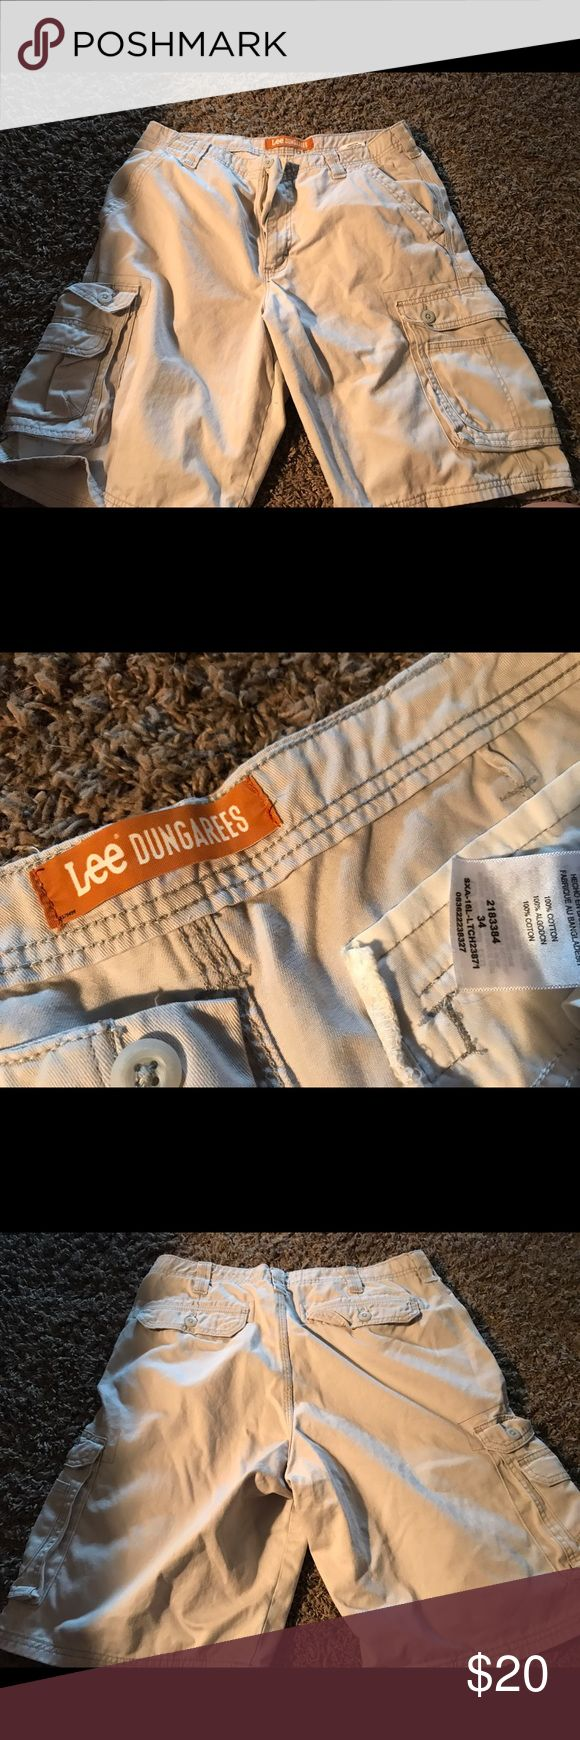 Men's Lee dungaree Men's Lee Dungarees it great shape bought wrong size never worn Lee Dungarees  Shorts Cargo